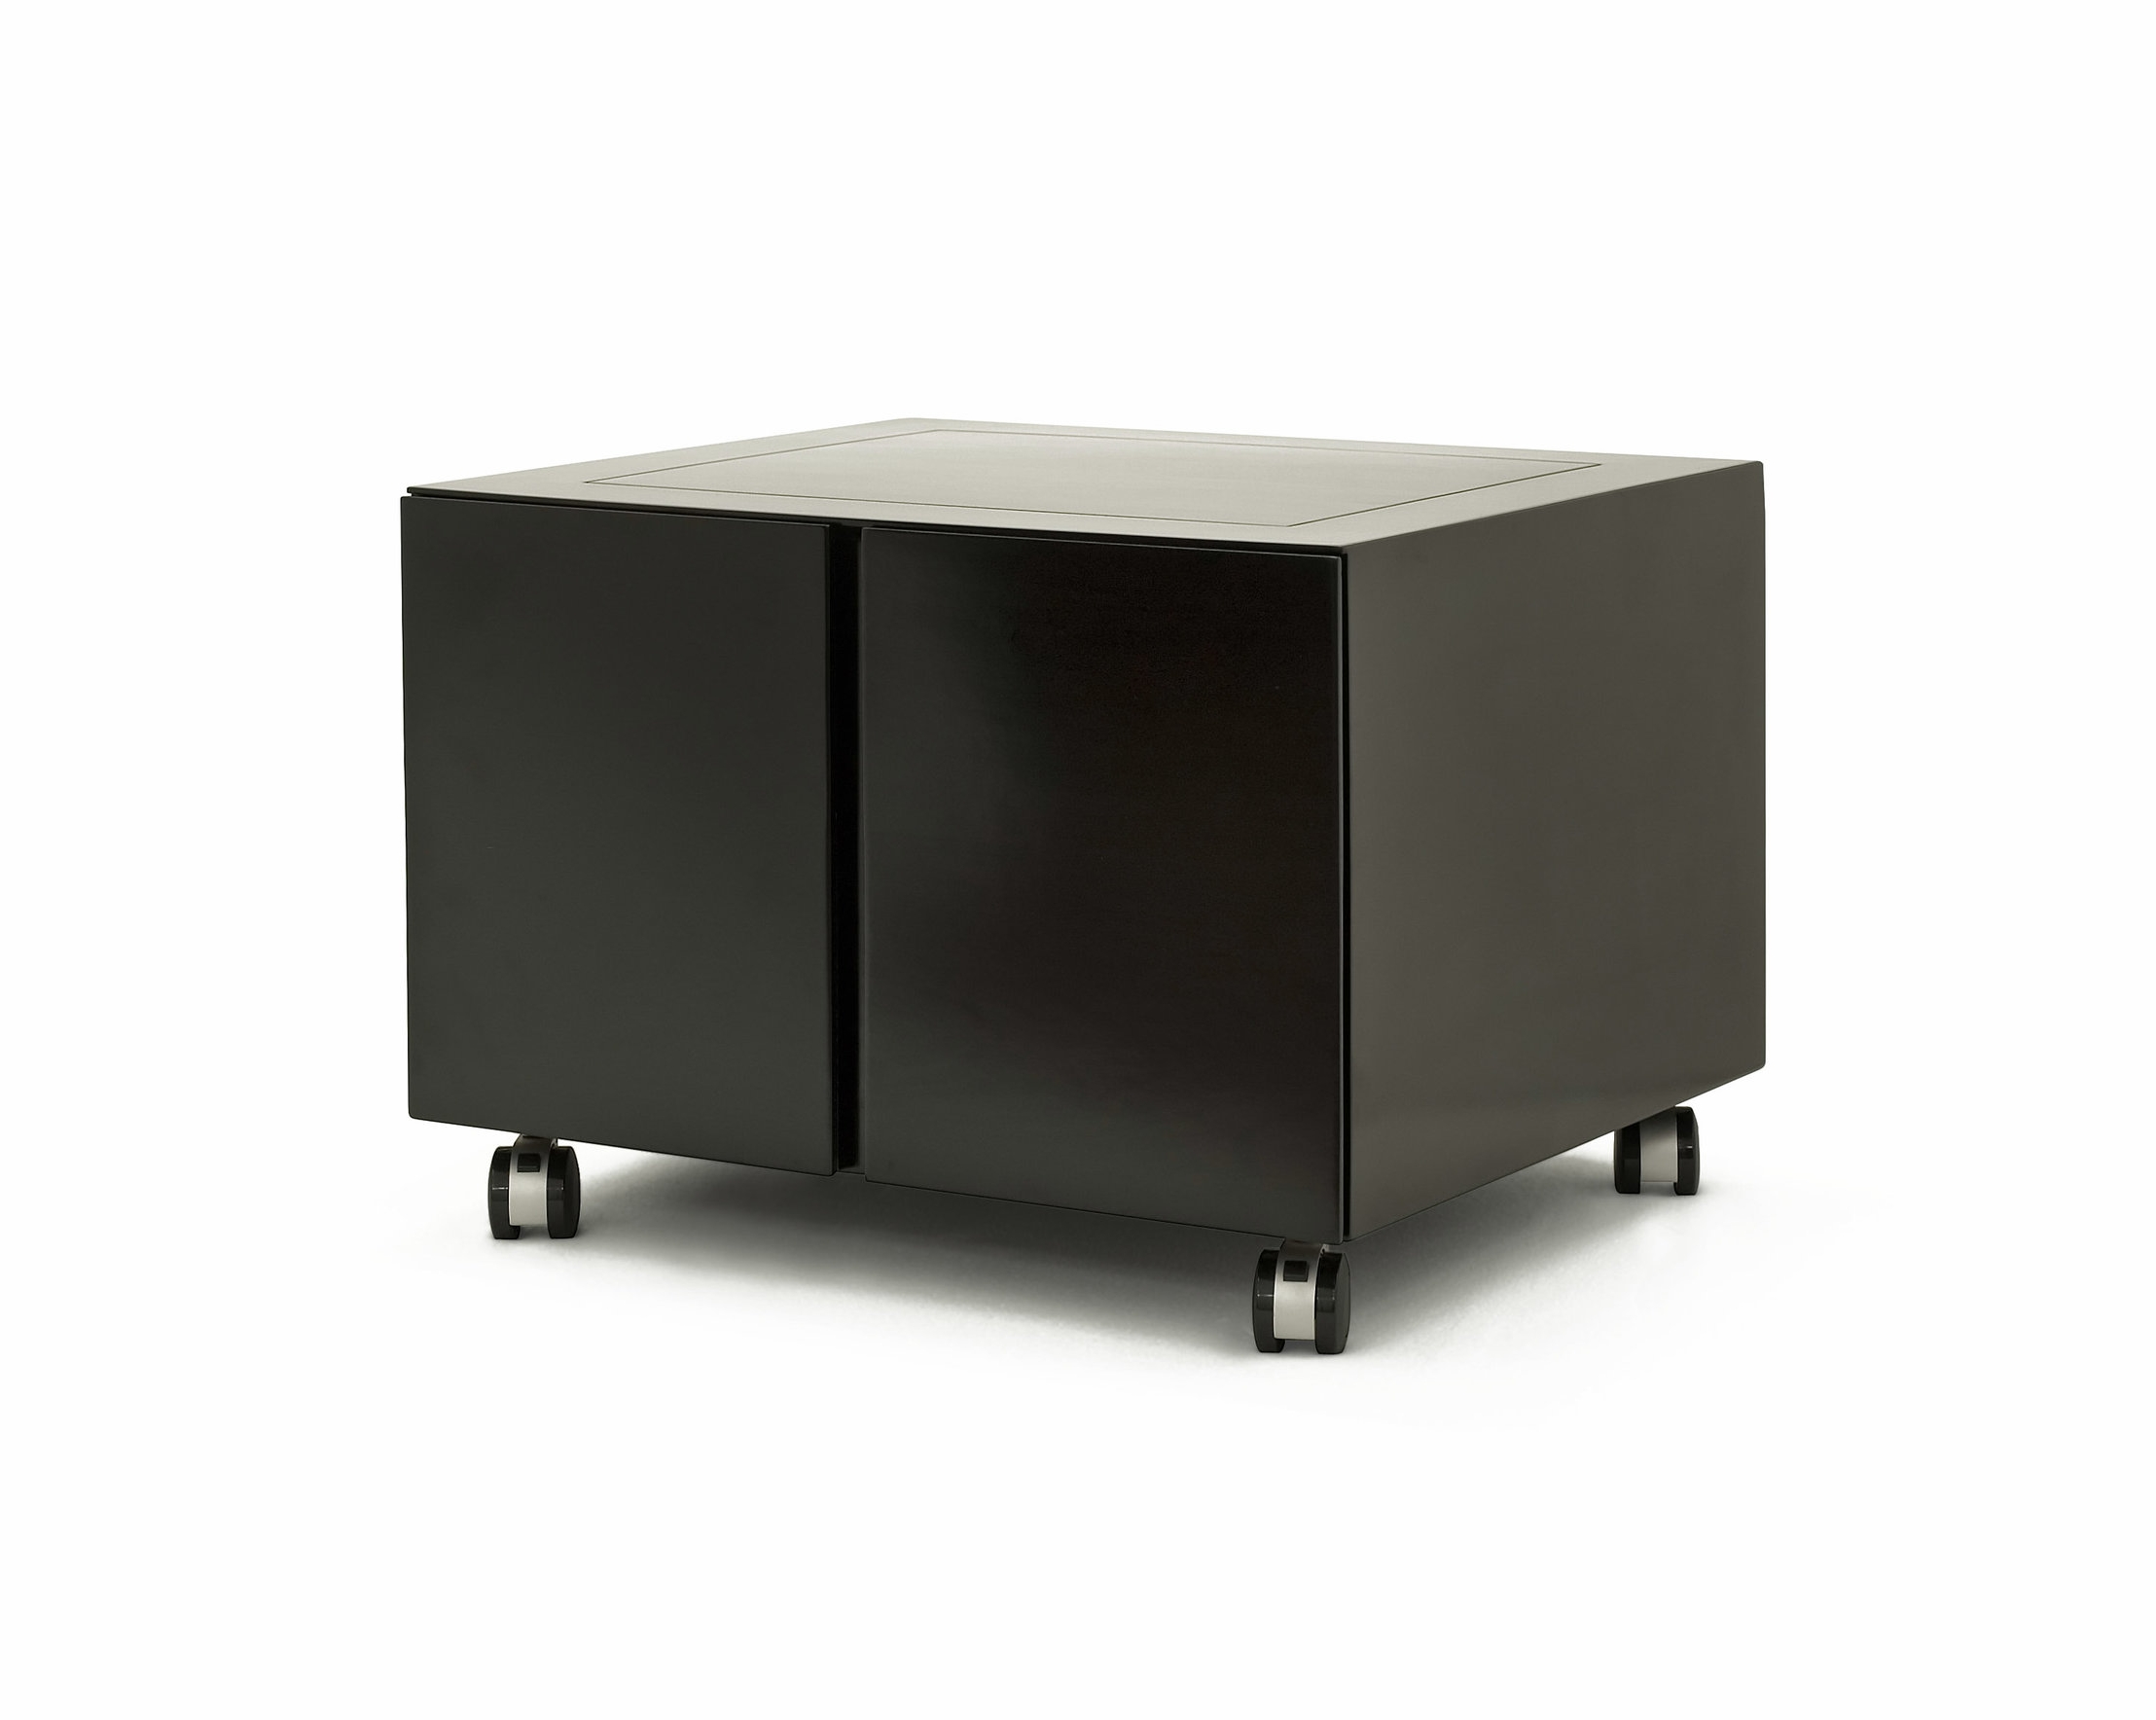 ....Custom made Modern furniture : Cabinet..特别定制現代家具:輪子柜....